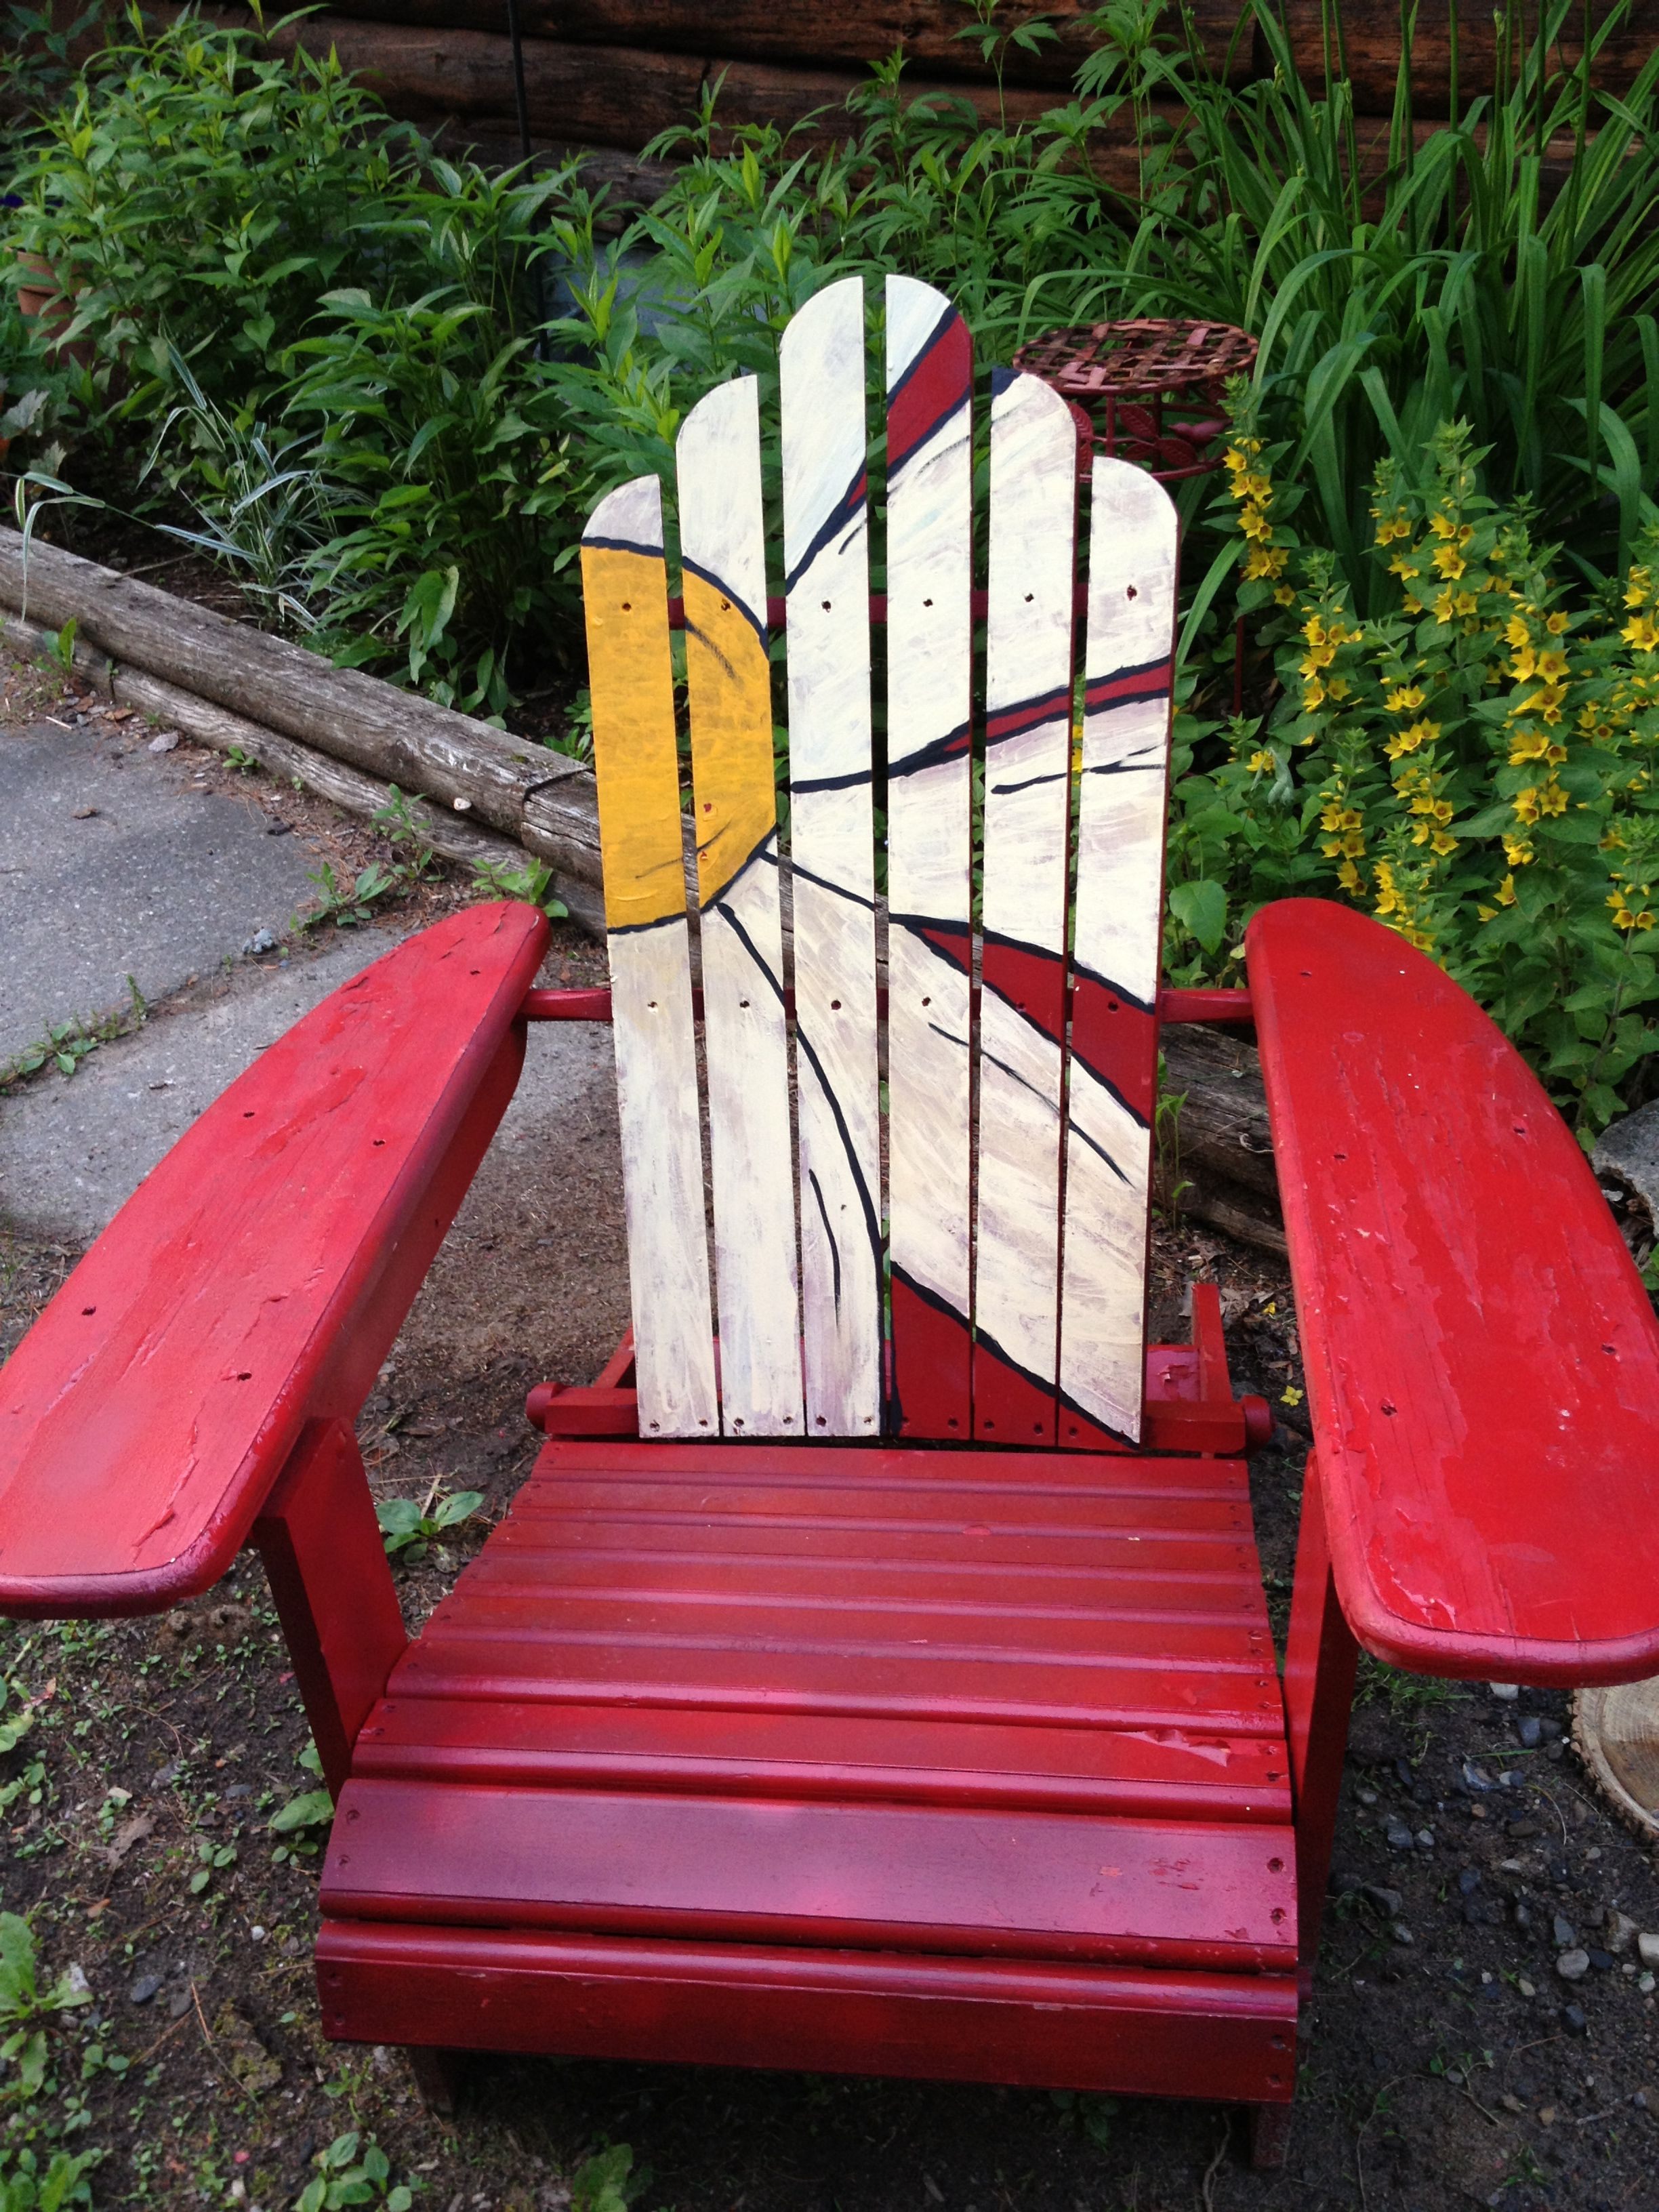 Tricked Out My Adirondack Chair By Painting A Giant Daisy On It